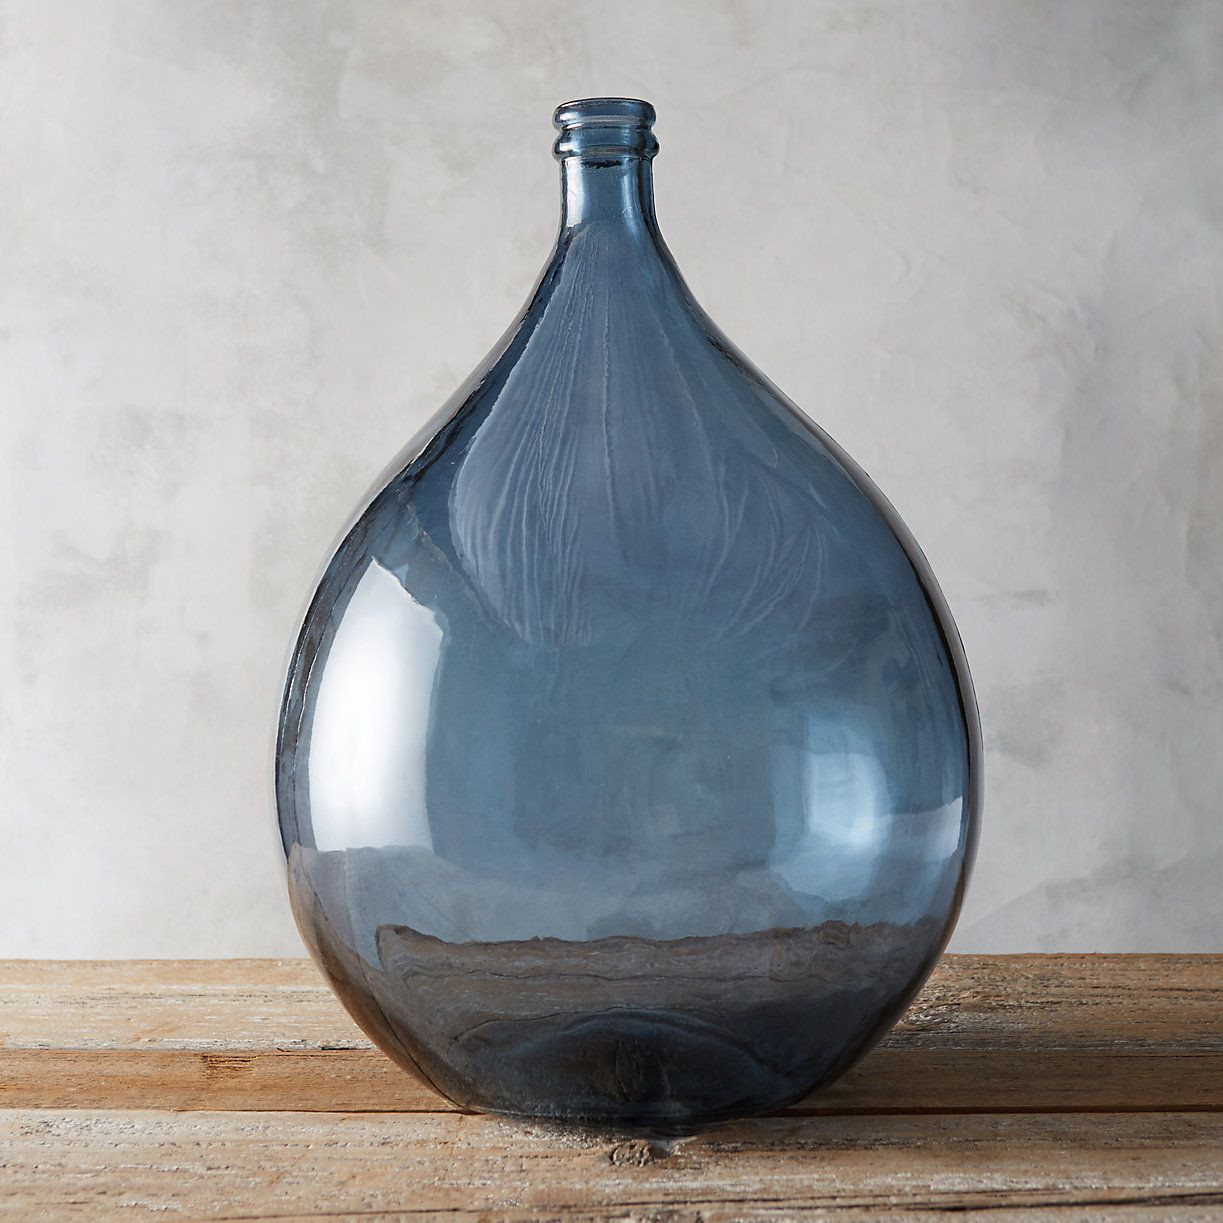 recycled glass jug vase of recycled glass demijohn vase house home pinterest interiors inside recycled glass demijohn vase